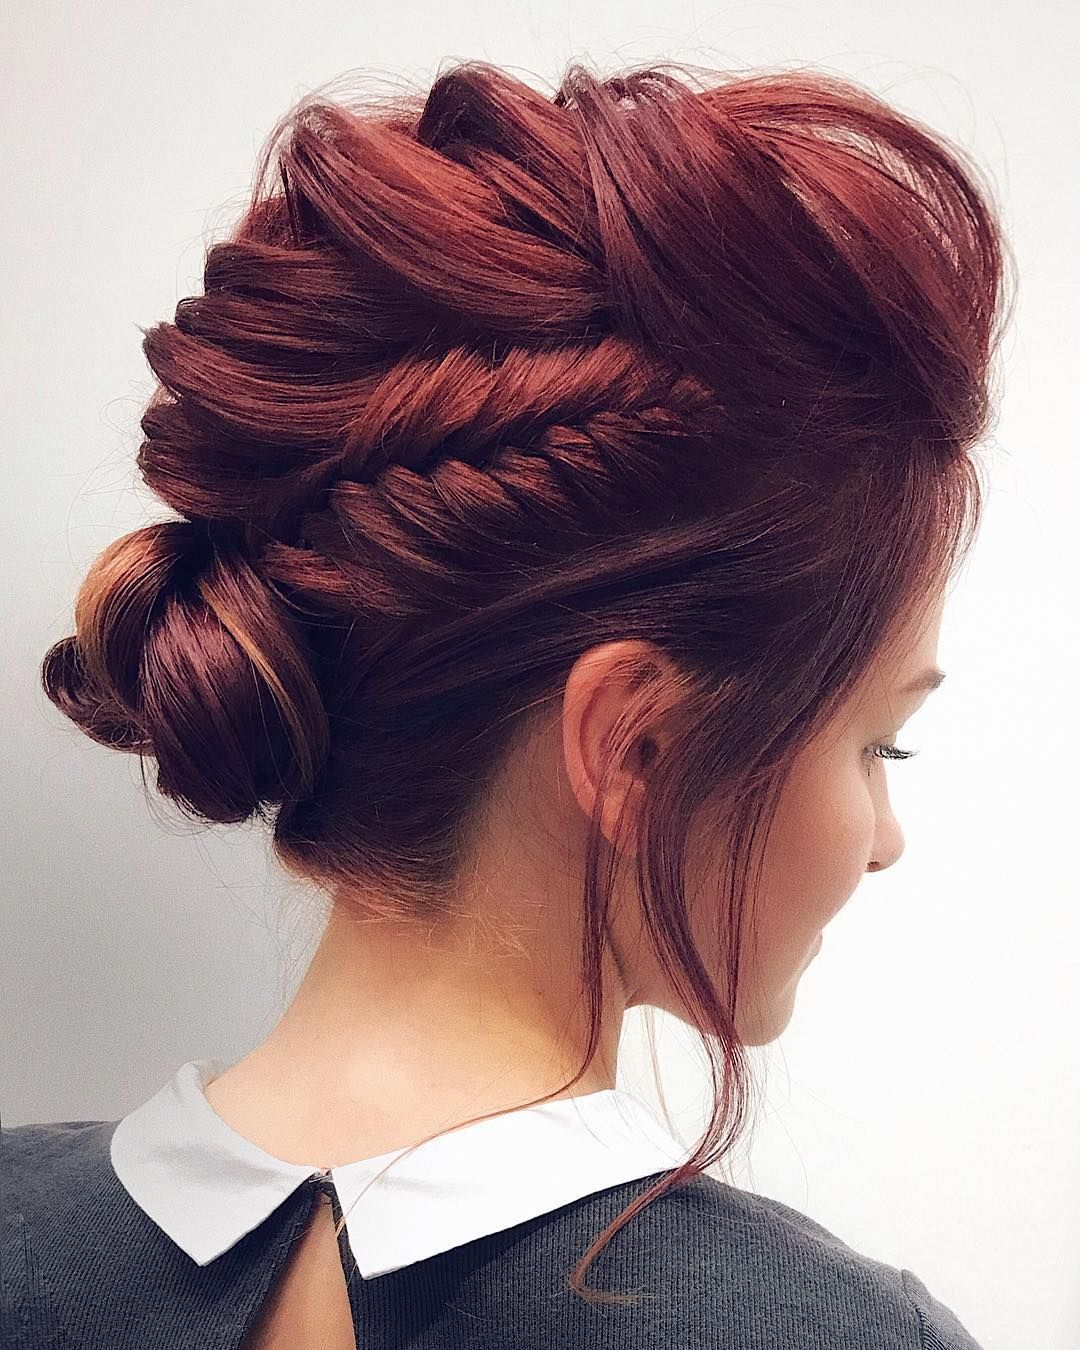 Gorgeous feminine braided updo wedding hairstyles unique wedding